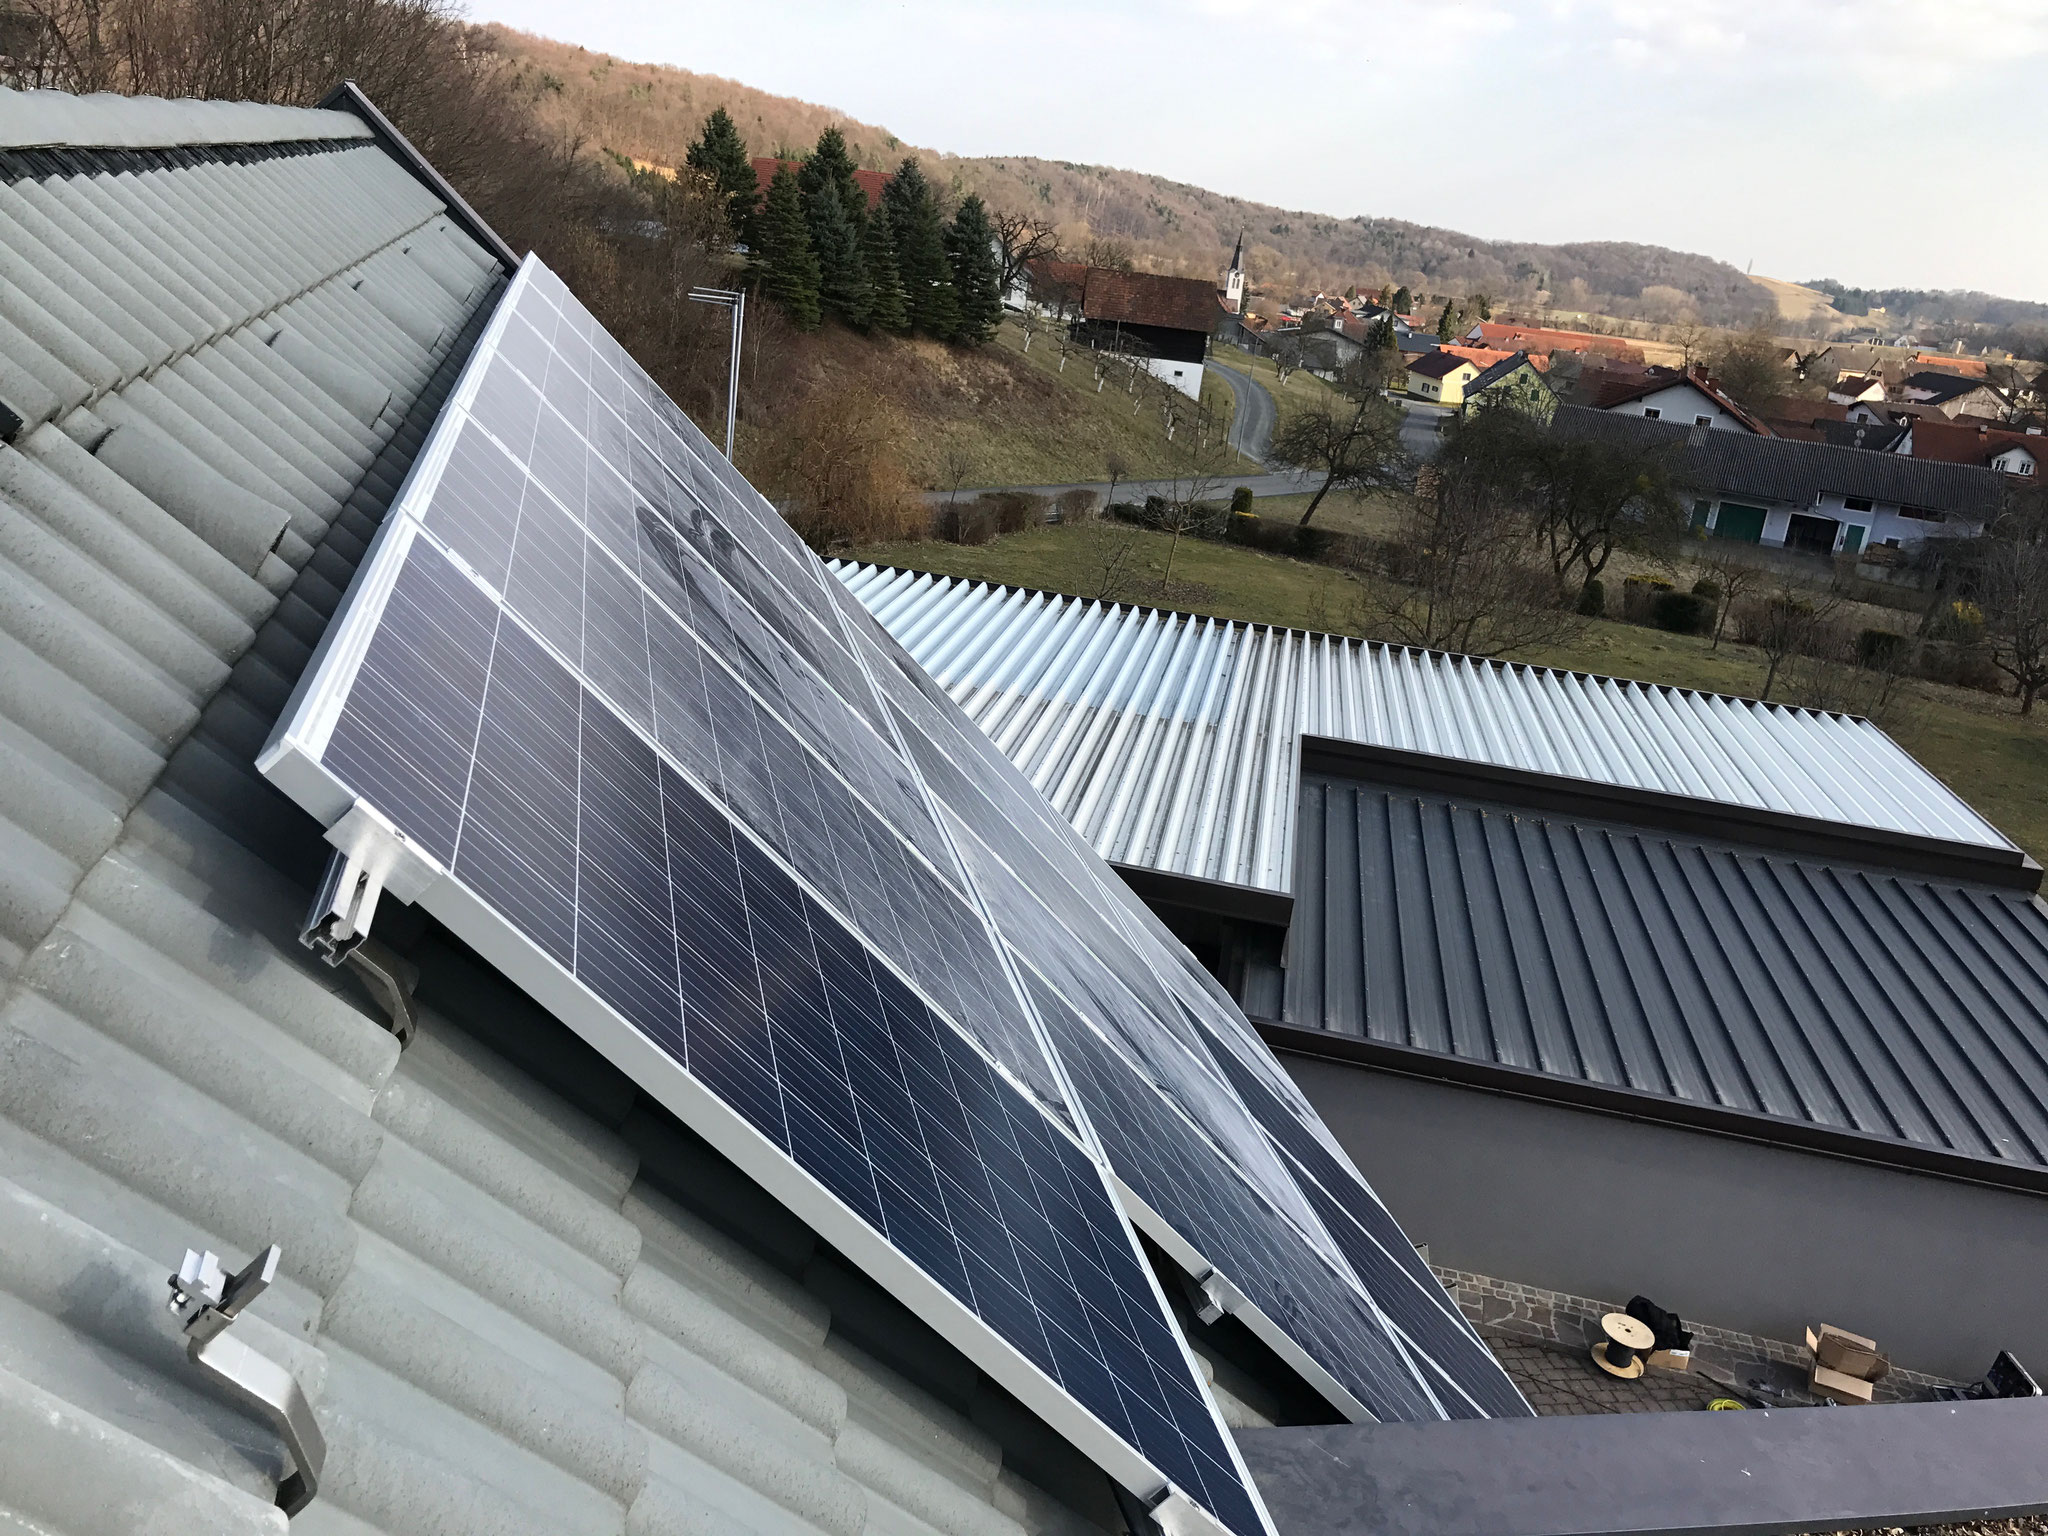 PV-module mounted on the pitched roof